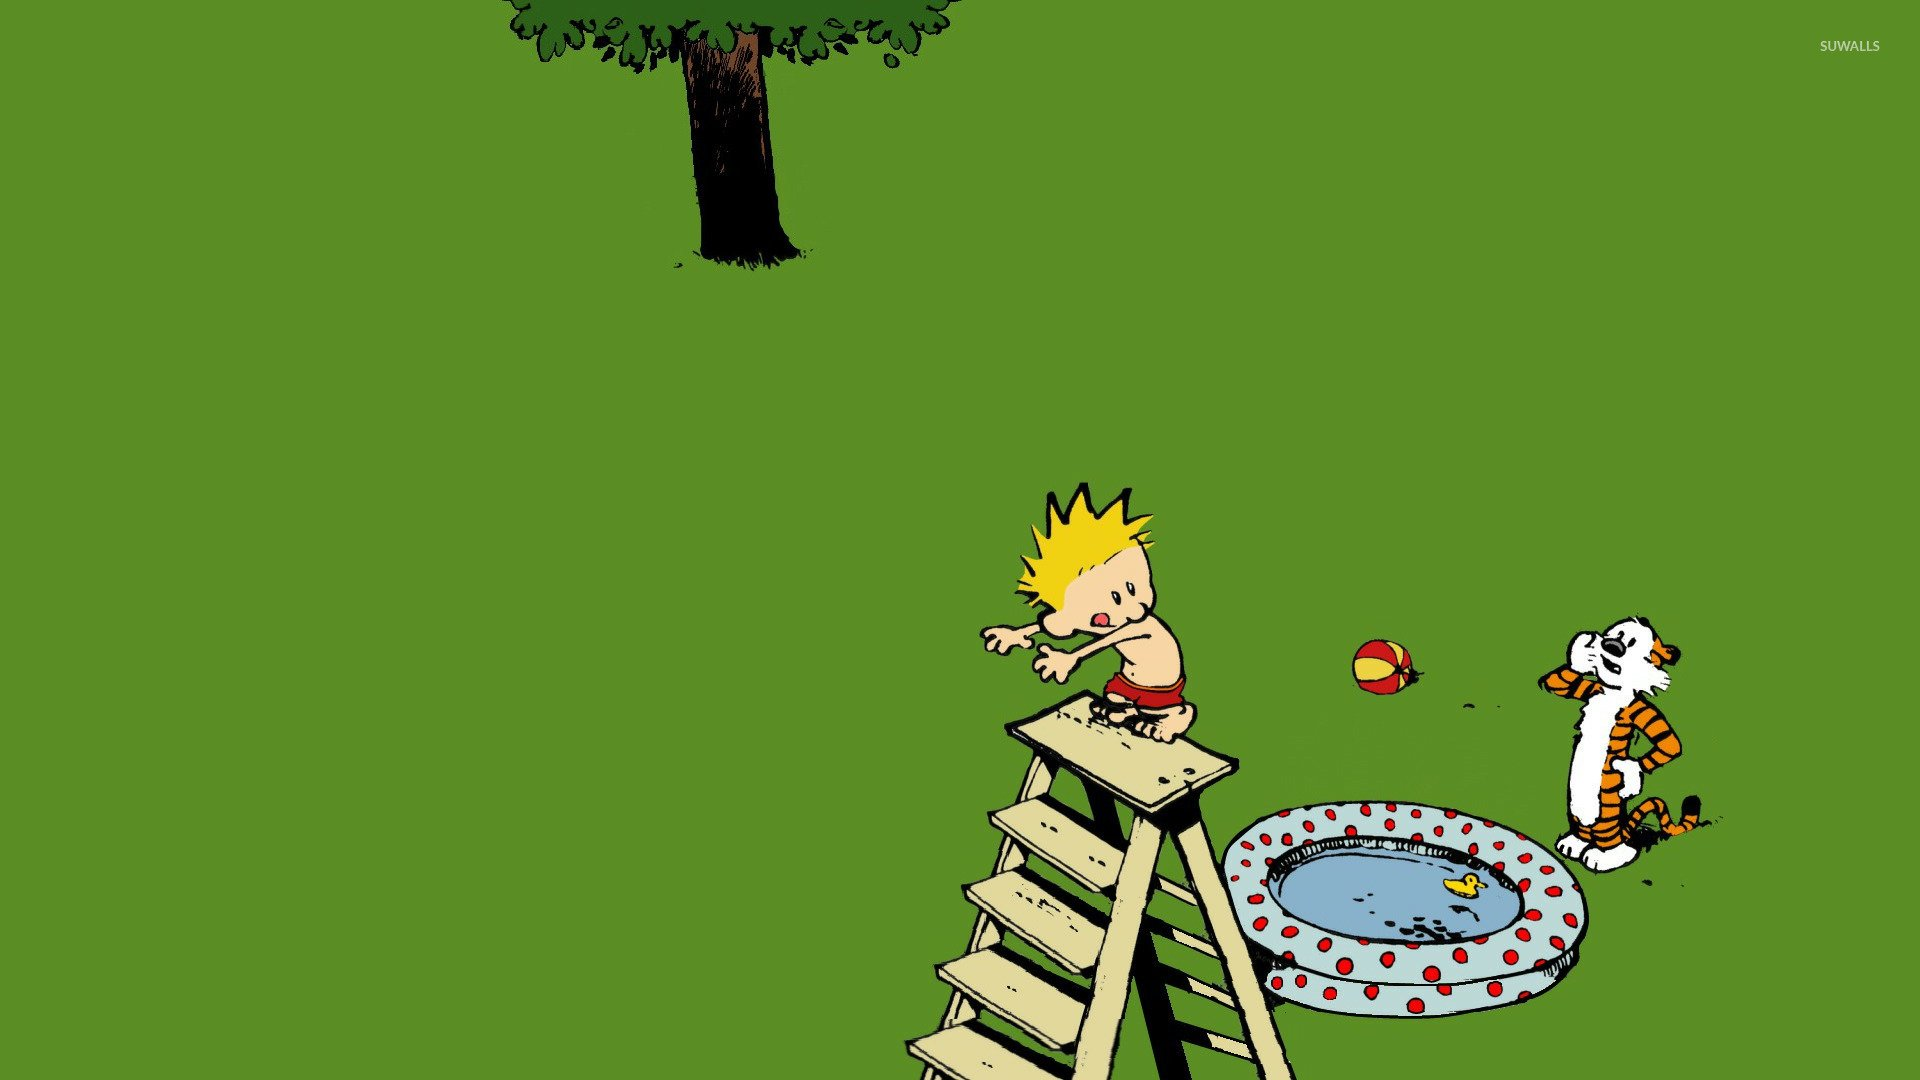 Calvin and Hobbes wallpaper   Cartoon wallpapers   15379 1920x1080